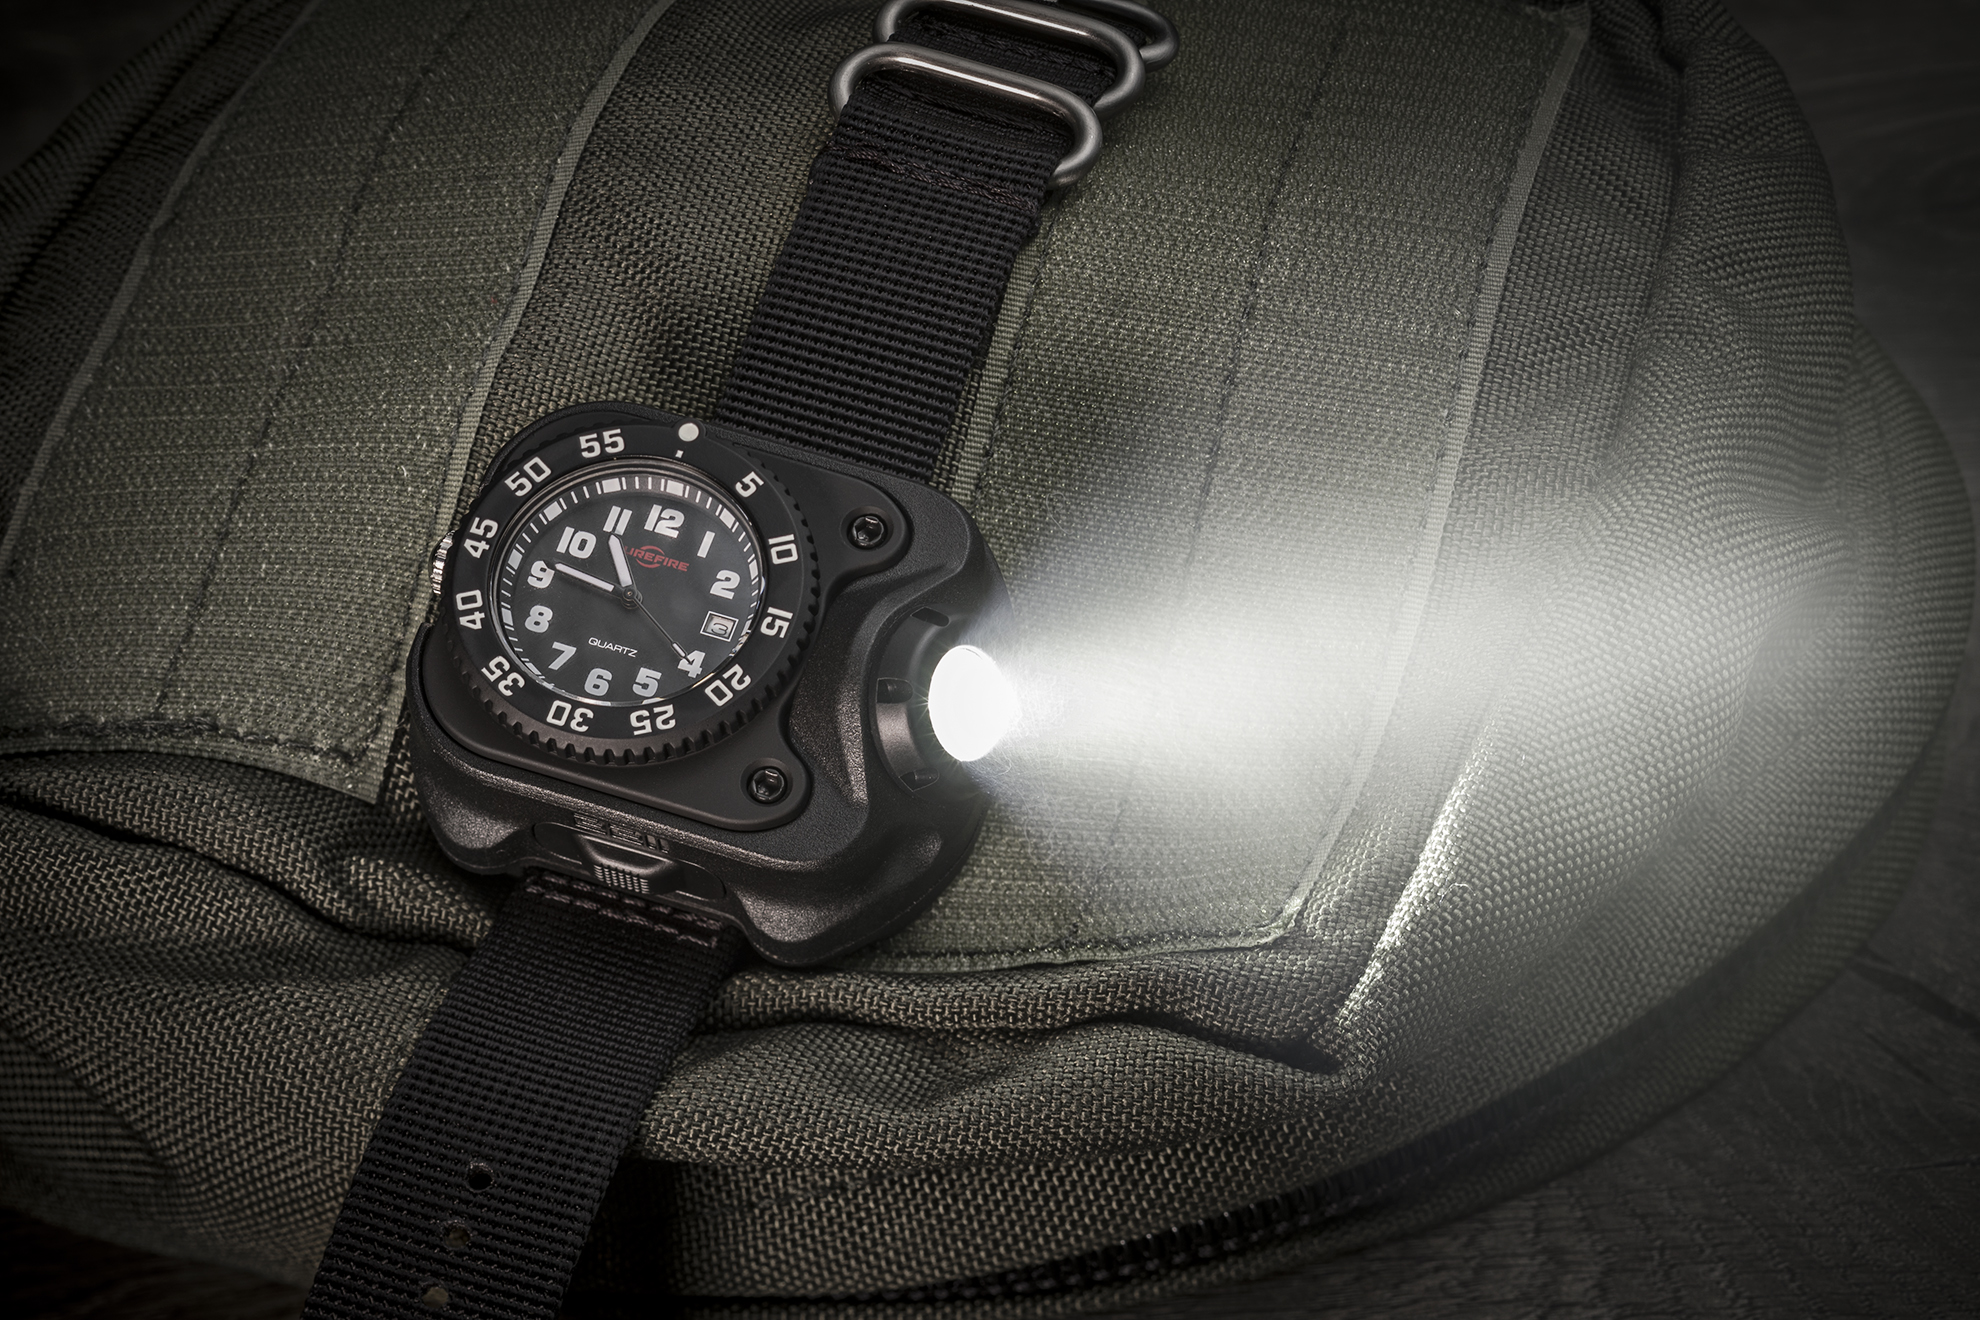 SureFire 2211 Standard WristLight with watch